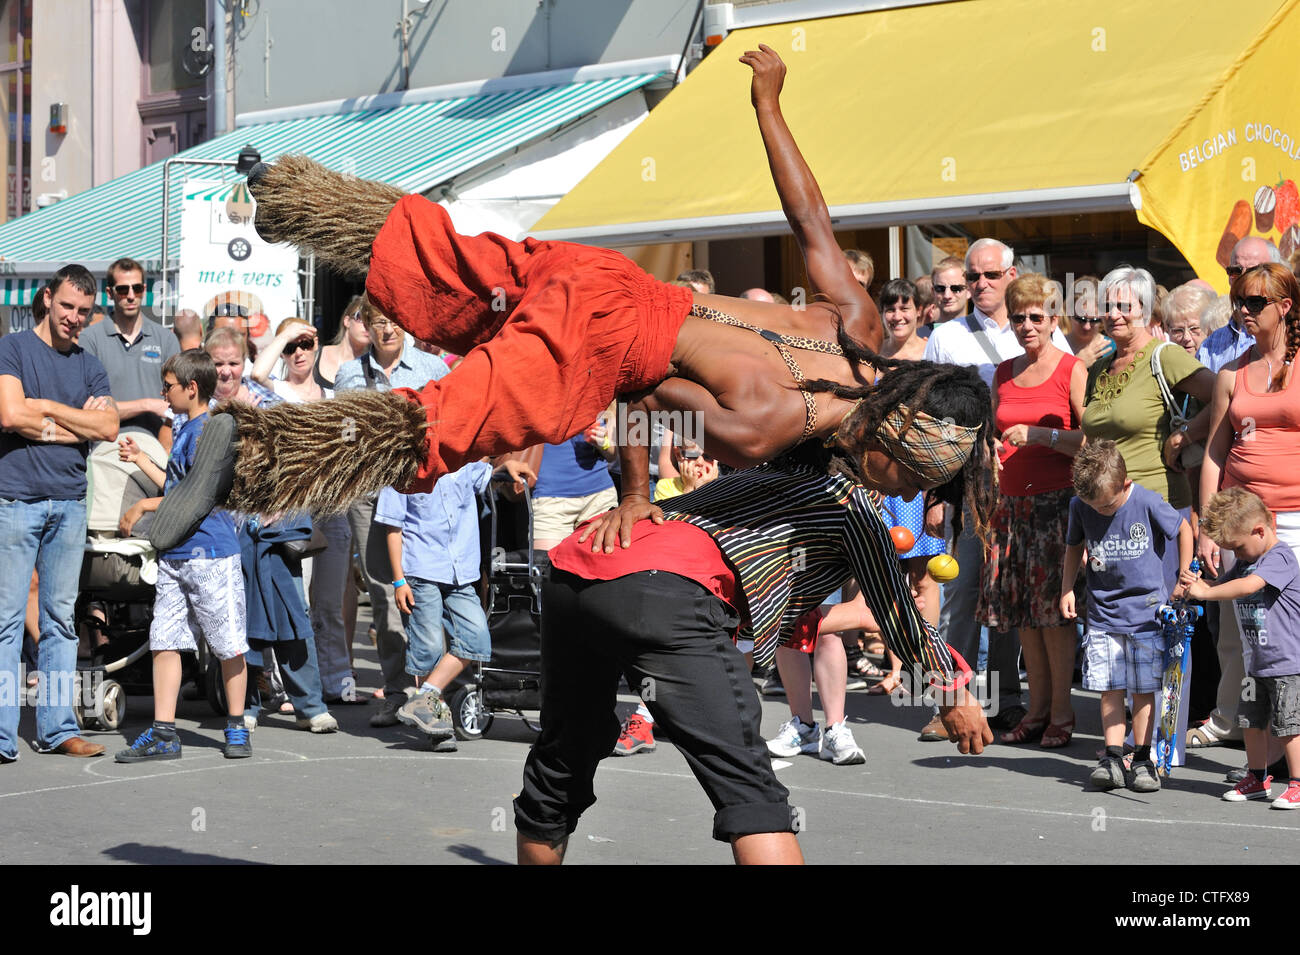 Animation by two black street performers doing acrobatics at the Gentse Feesten / Ghent Festivities in summer, Belgium - Stock Image